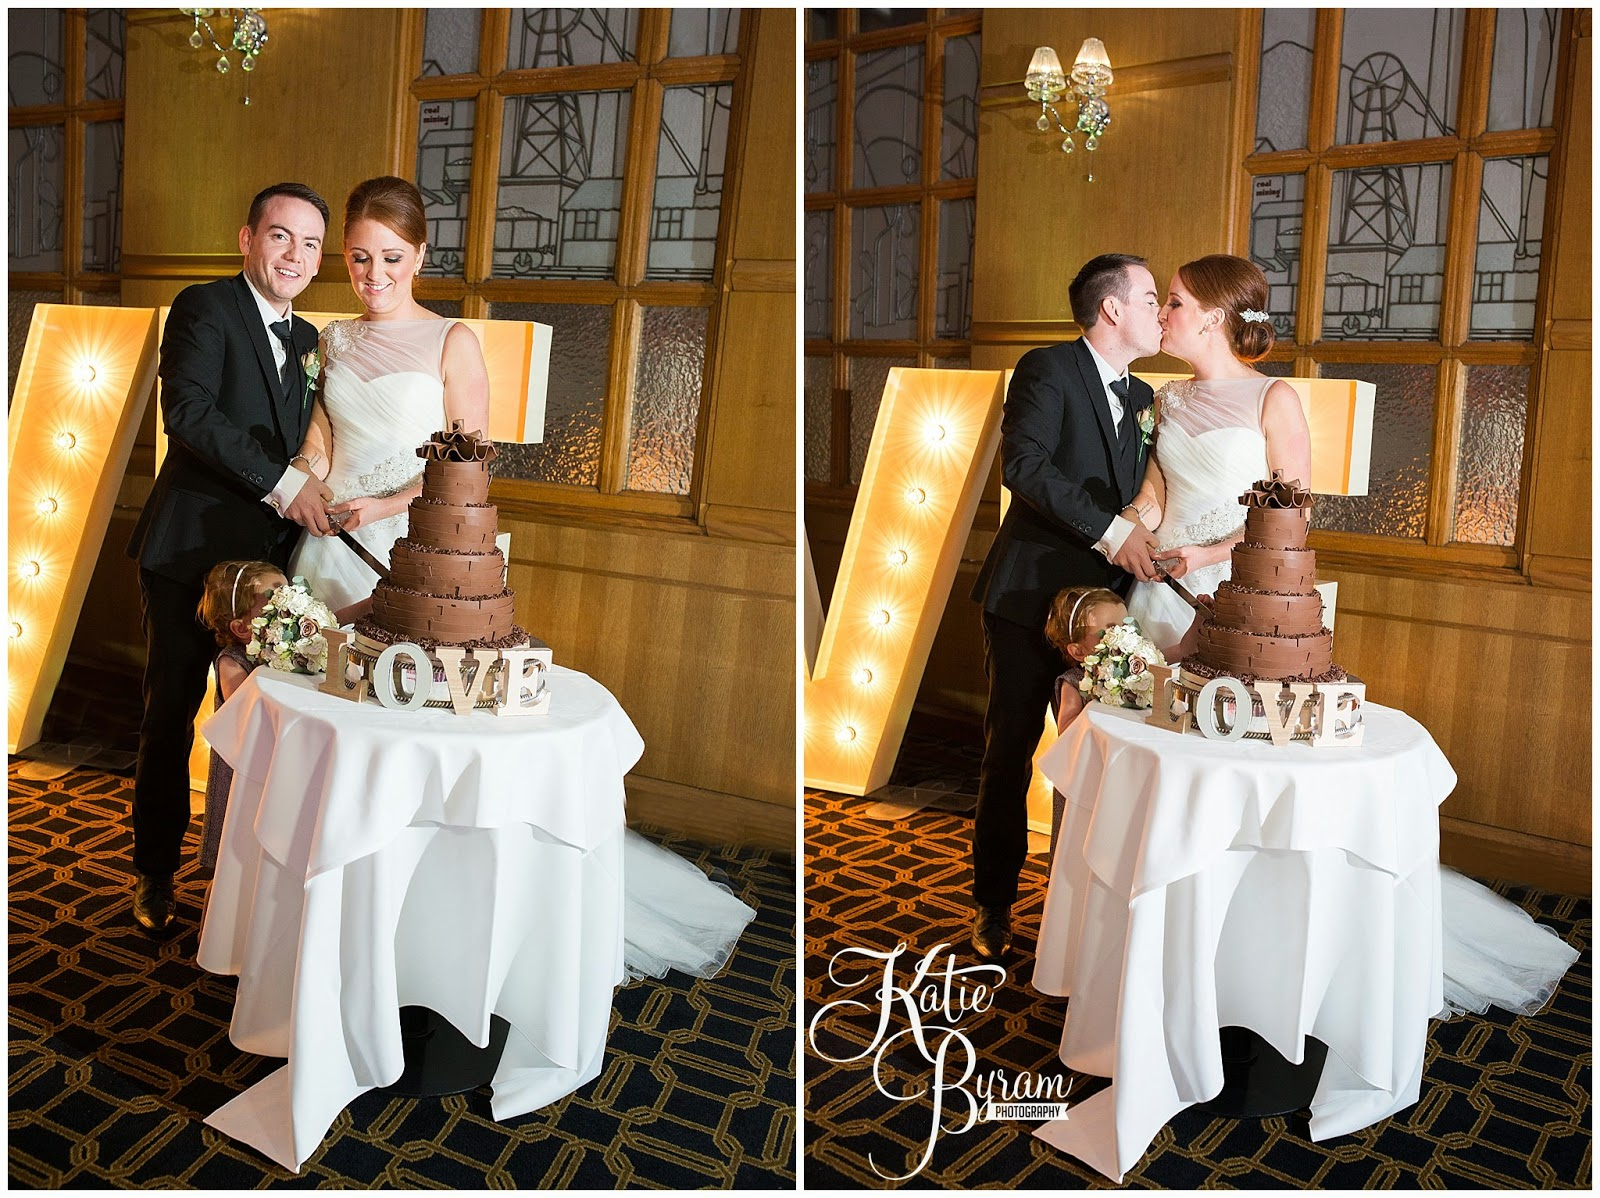 cake cutting, bride and groom, marks and spencers cake, newcastle city centre wedding, the vermont hotel,vermont weddings, newcastle wedding venue, katie byram photography, hotel wedding newcastle, quayside, nighttime wedding photographs